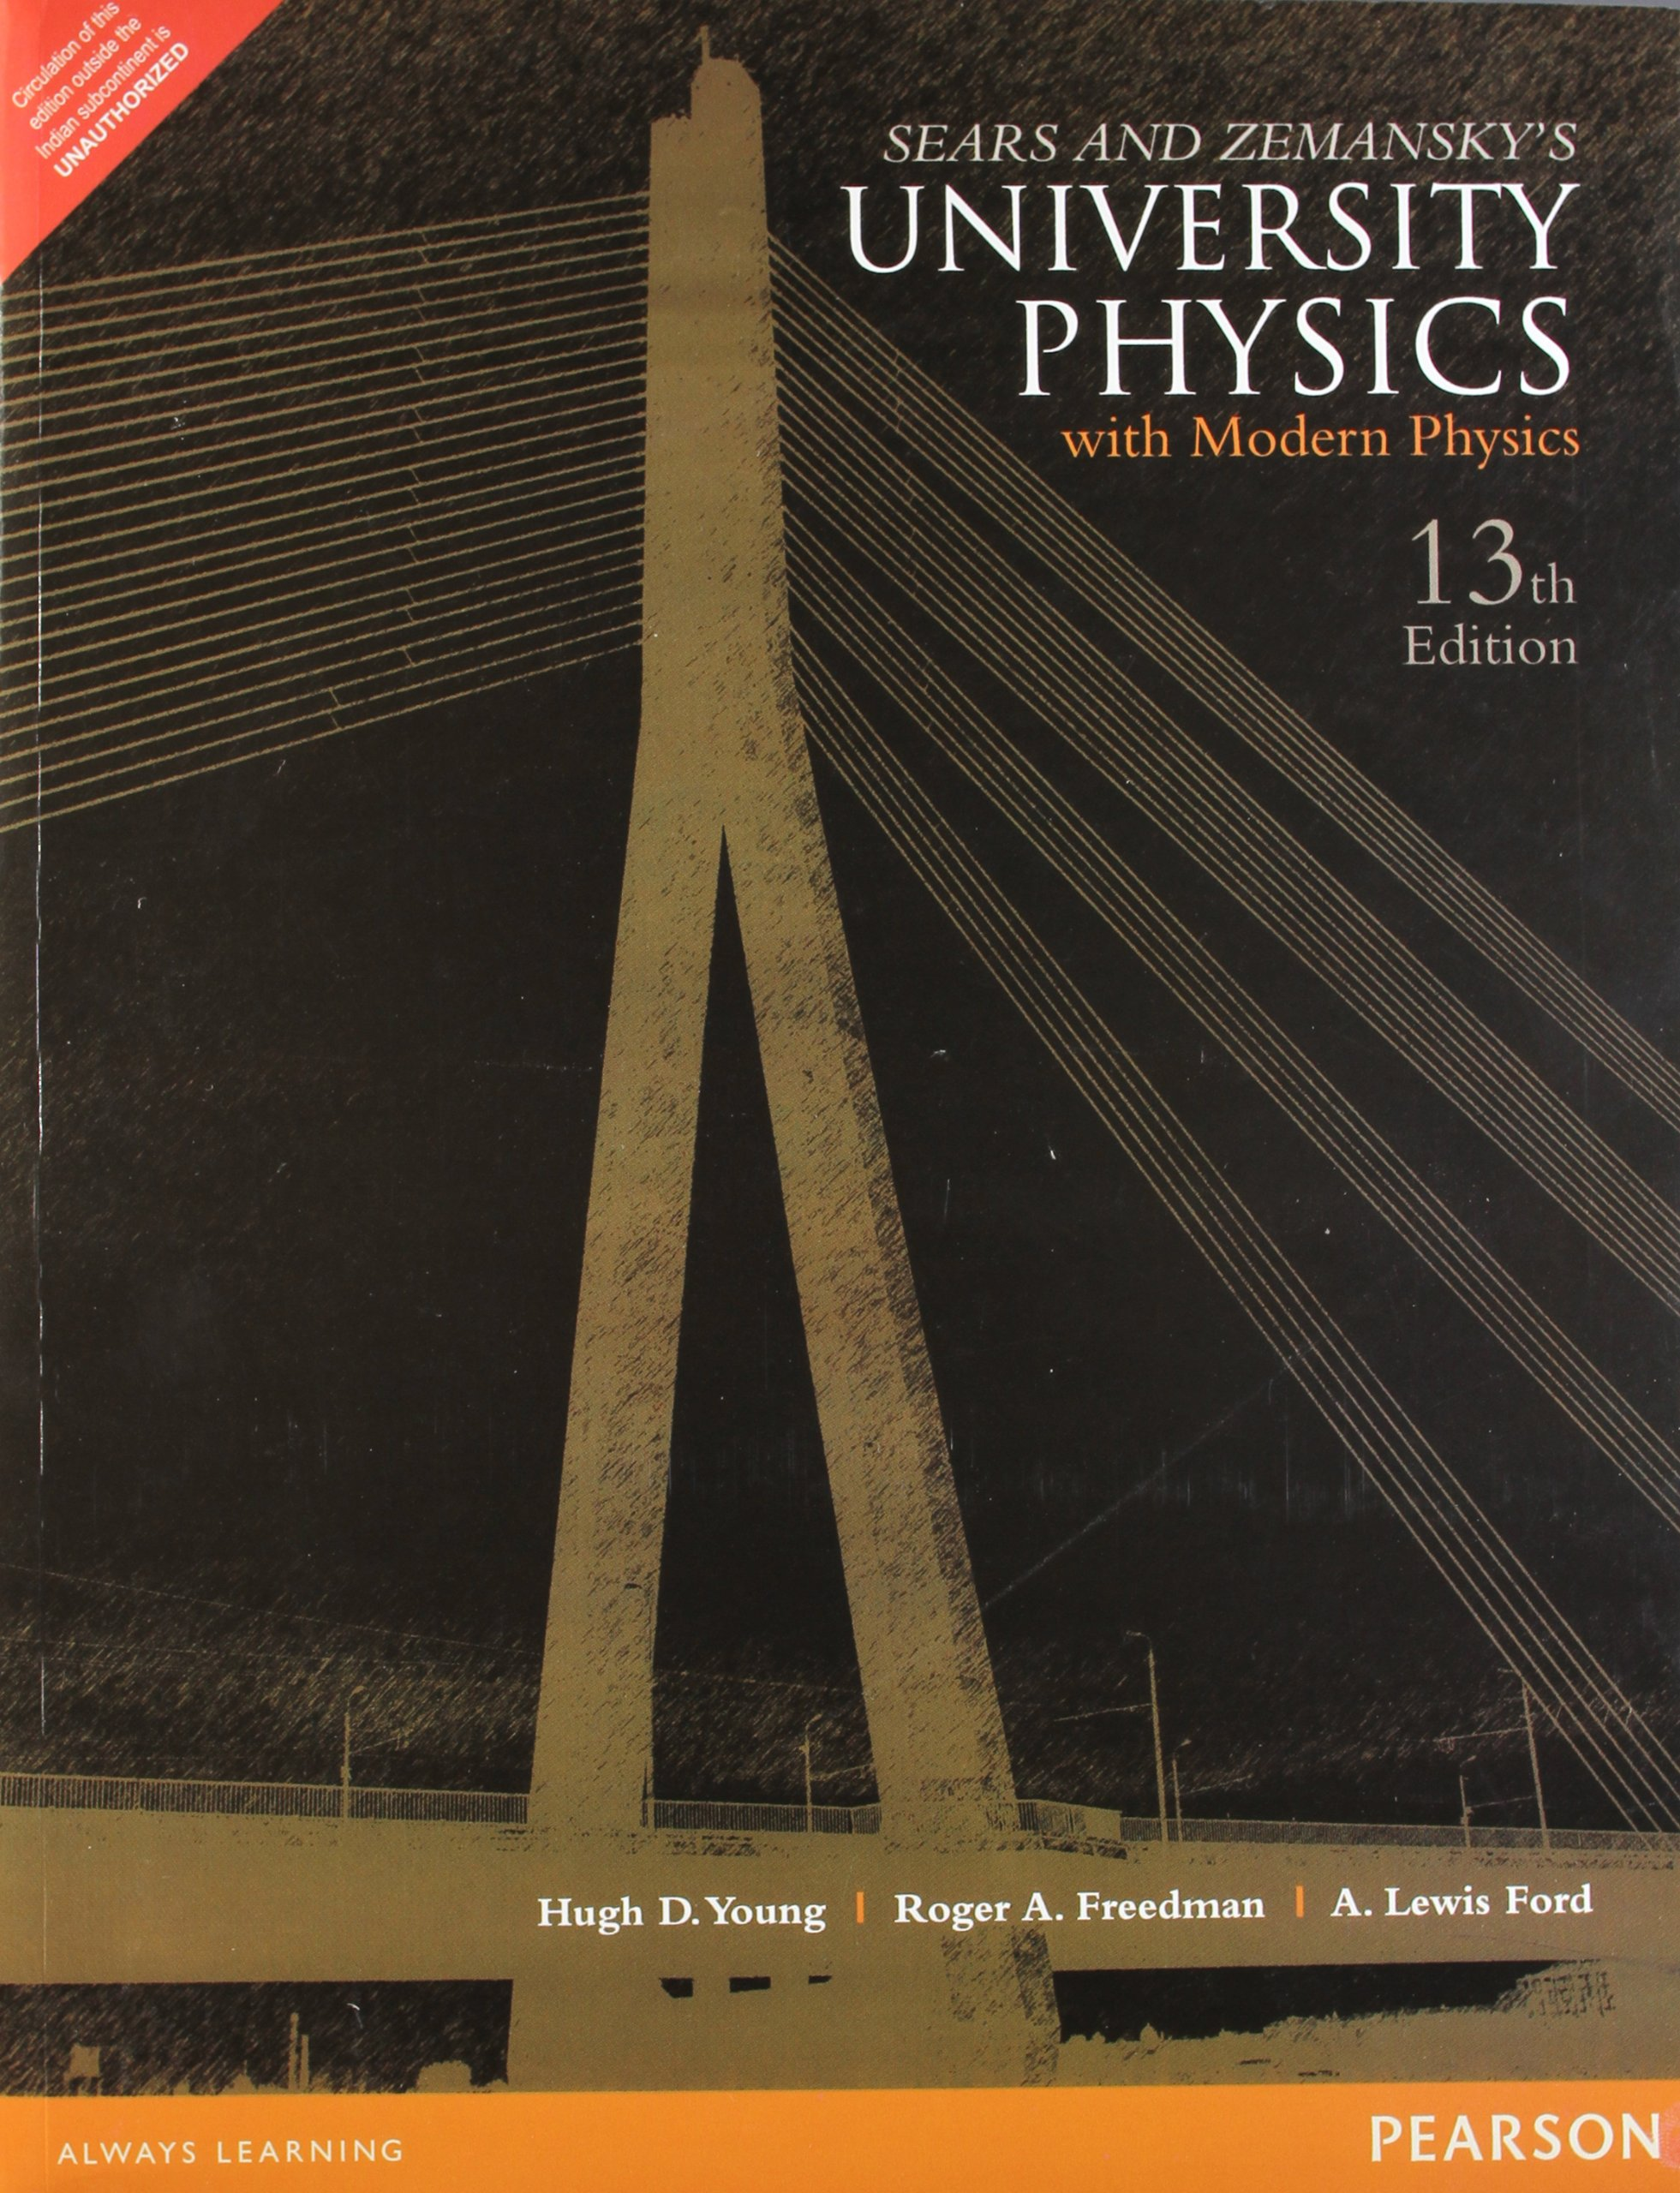 Buy university physics with modern physics by Hugh D. Young 13th edition  Book Online at Low Prices in India | university physics with modern physics  by Hugh ...